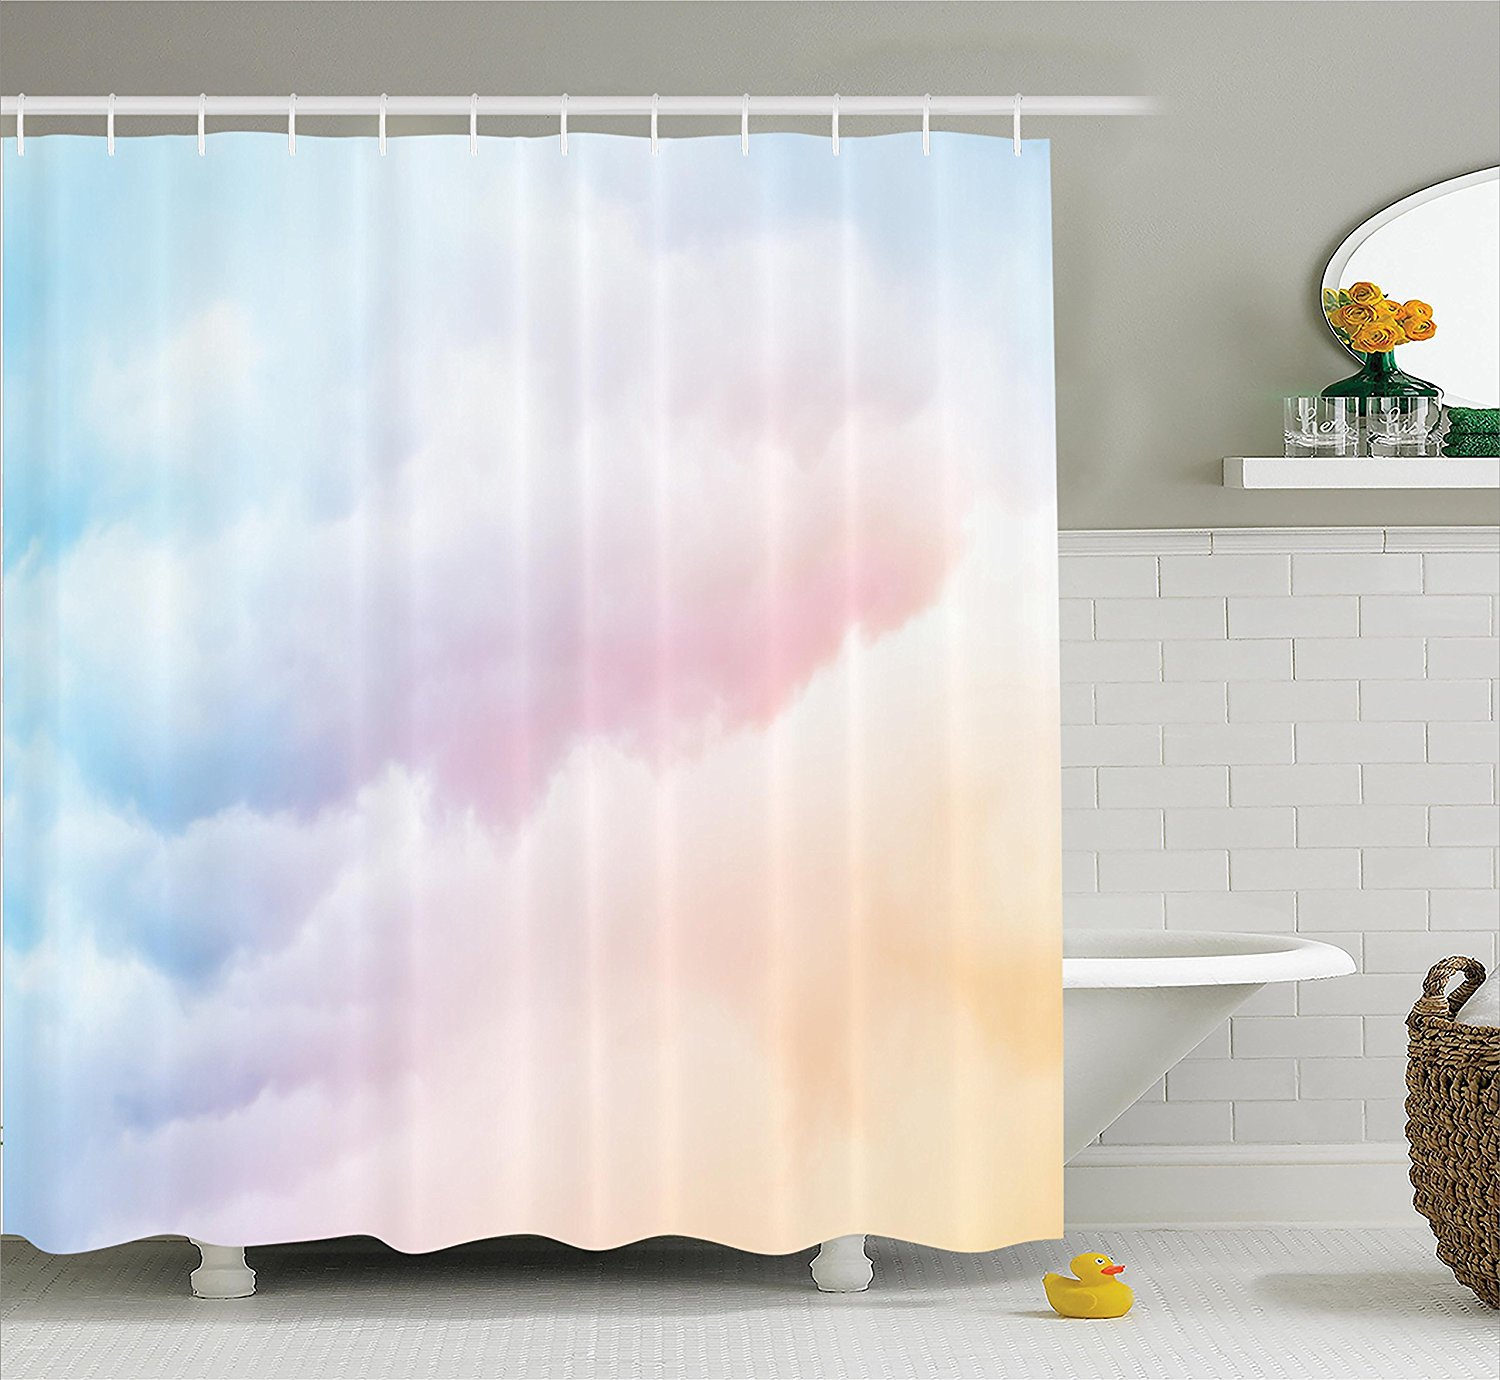 Us 17 41 10 Off Fluffy Dreamy Gradient Faded Pastel Cloud Ethereal Fog Sublime Rainbow Featured Decor Polyester Fabric Bathroom Shower Curtain In